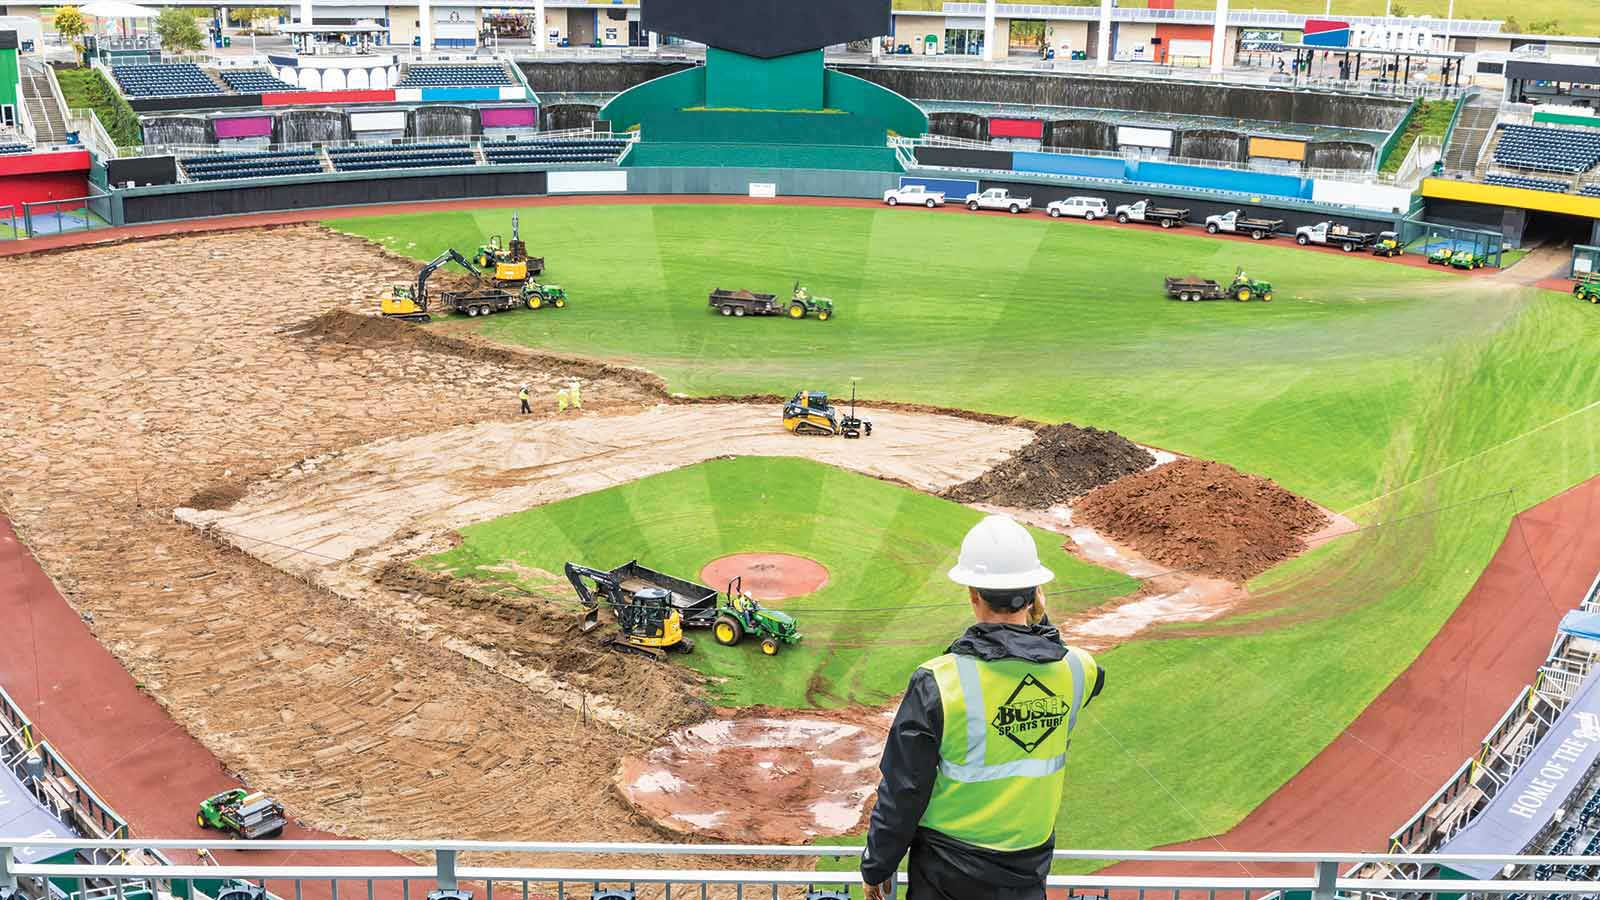 Steve Bush, owner of Bush Sports Turf, watches his all-Deere fleet in action in the Kansas City Royals' Kauffman Stadium.